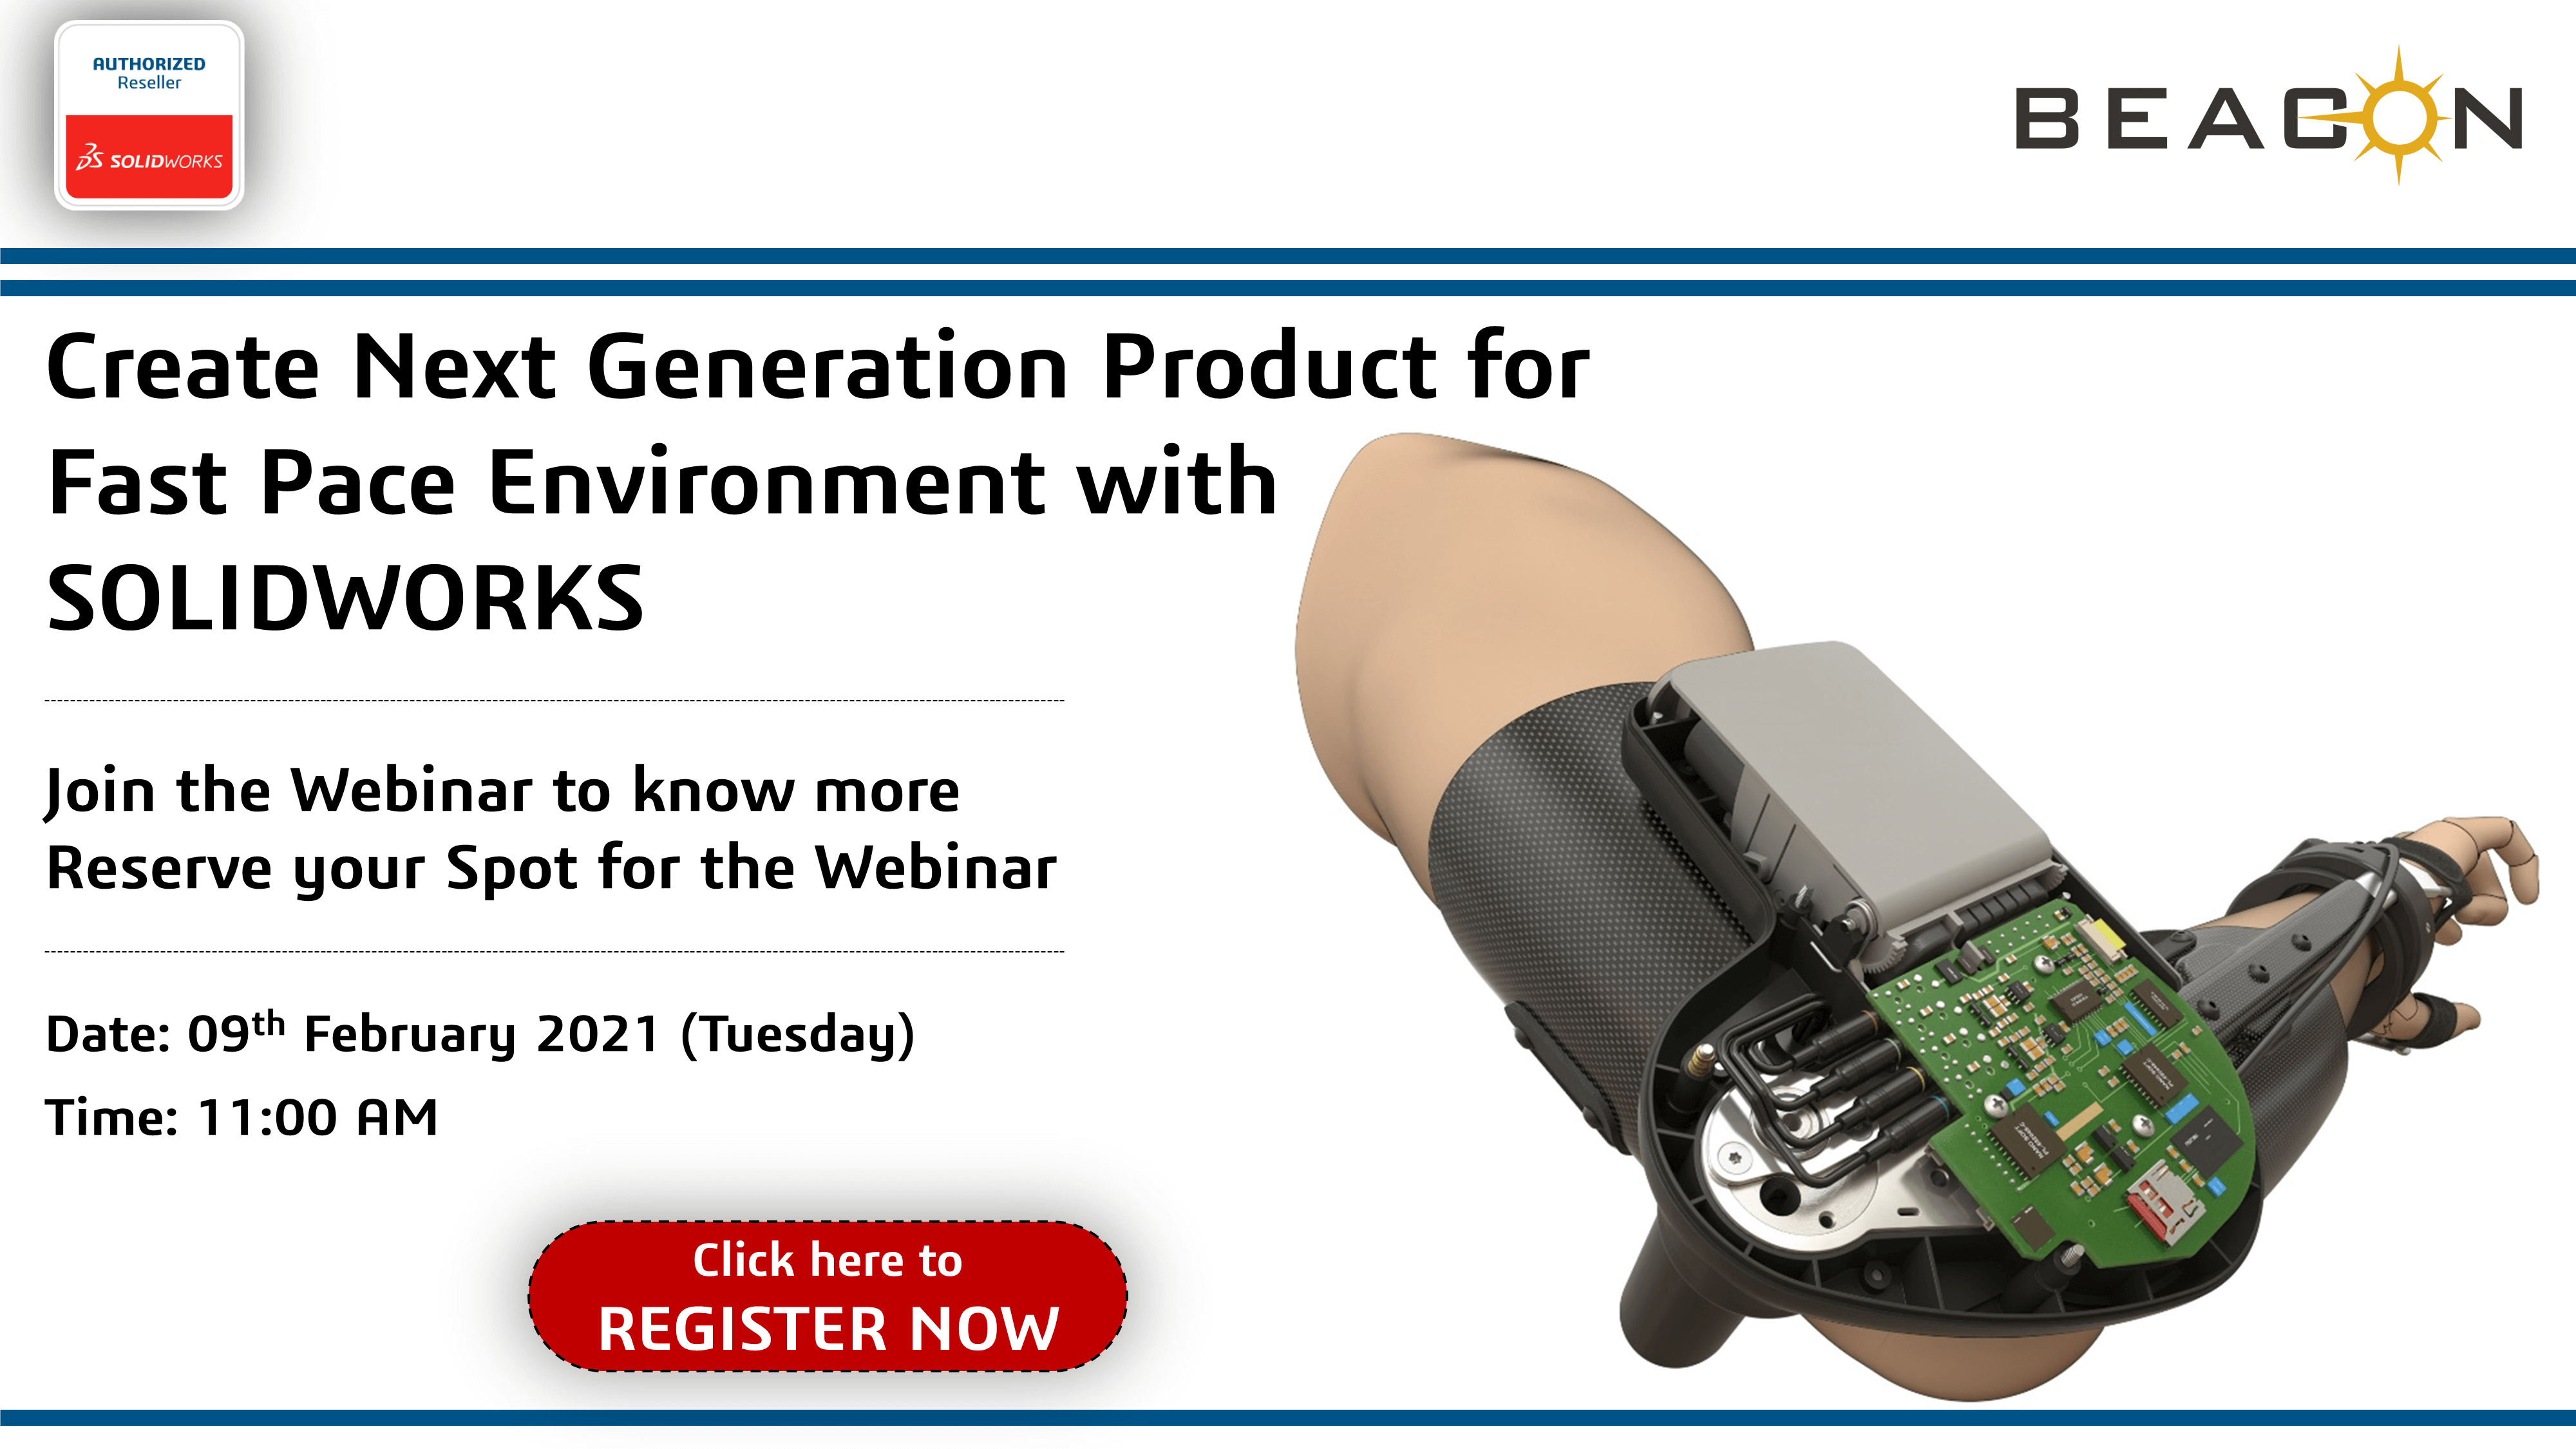 Create Next Generation Product for Fast Pace Environment with SOLIDWORKS